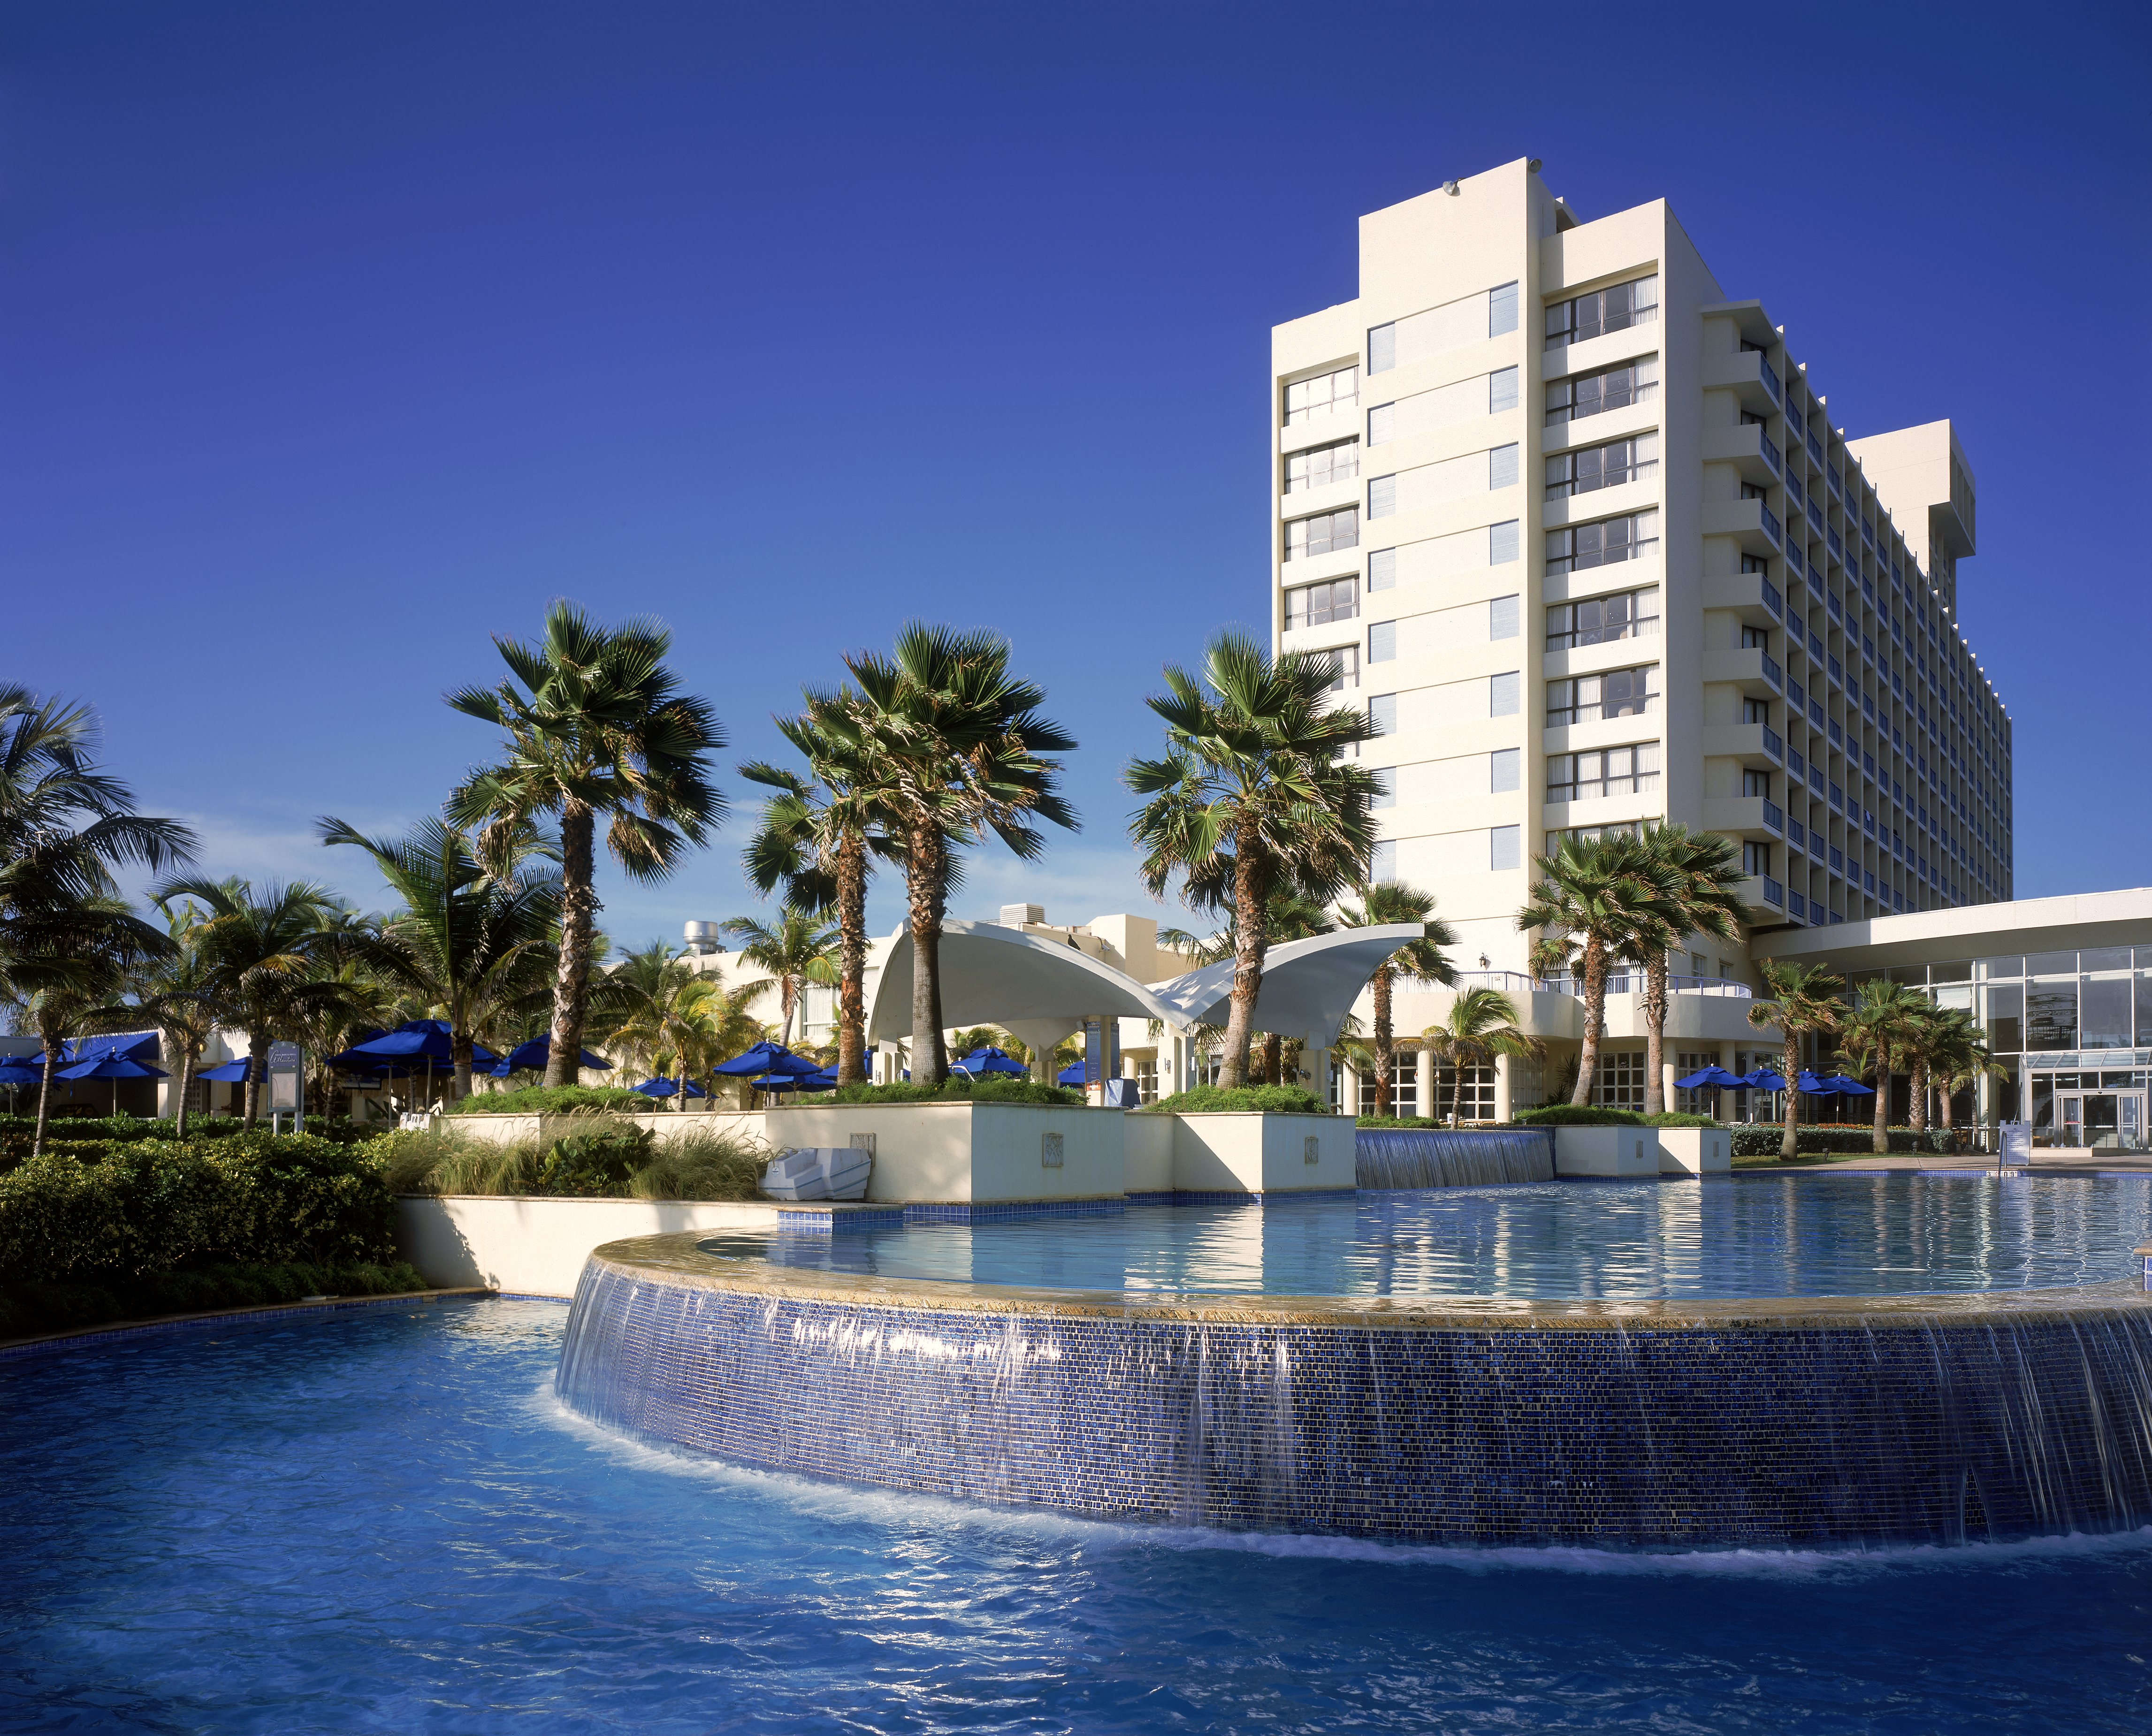 Palm trees and fountain outside the Caribe Hilton in San Juan, Puerto Rico.